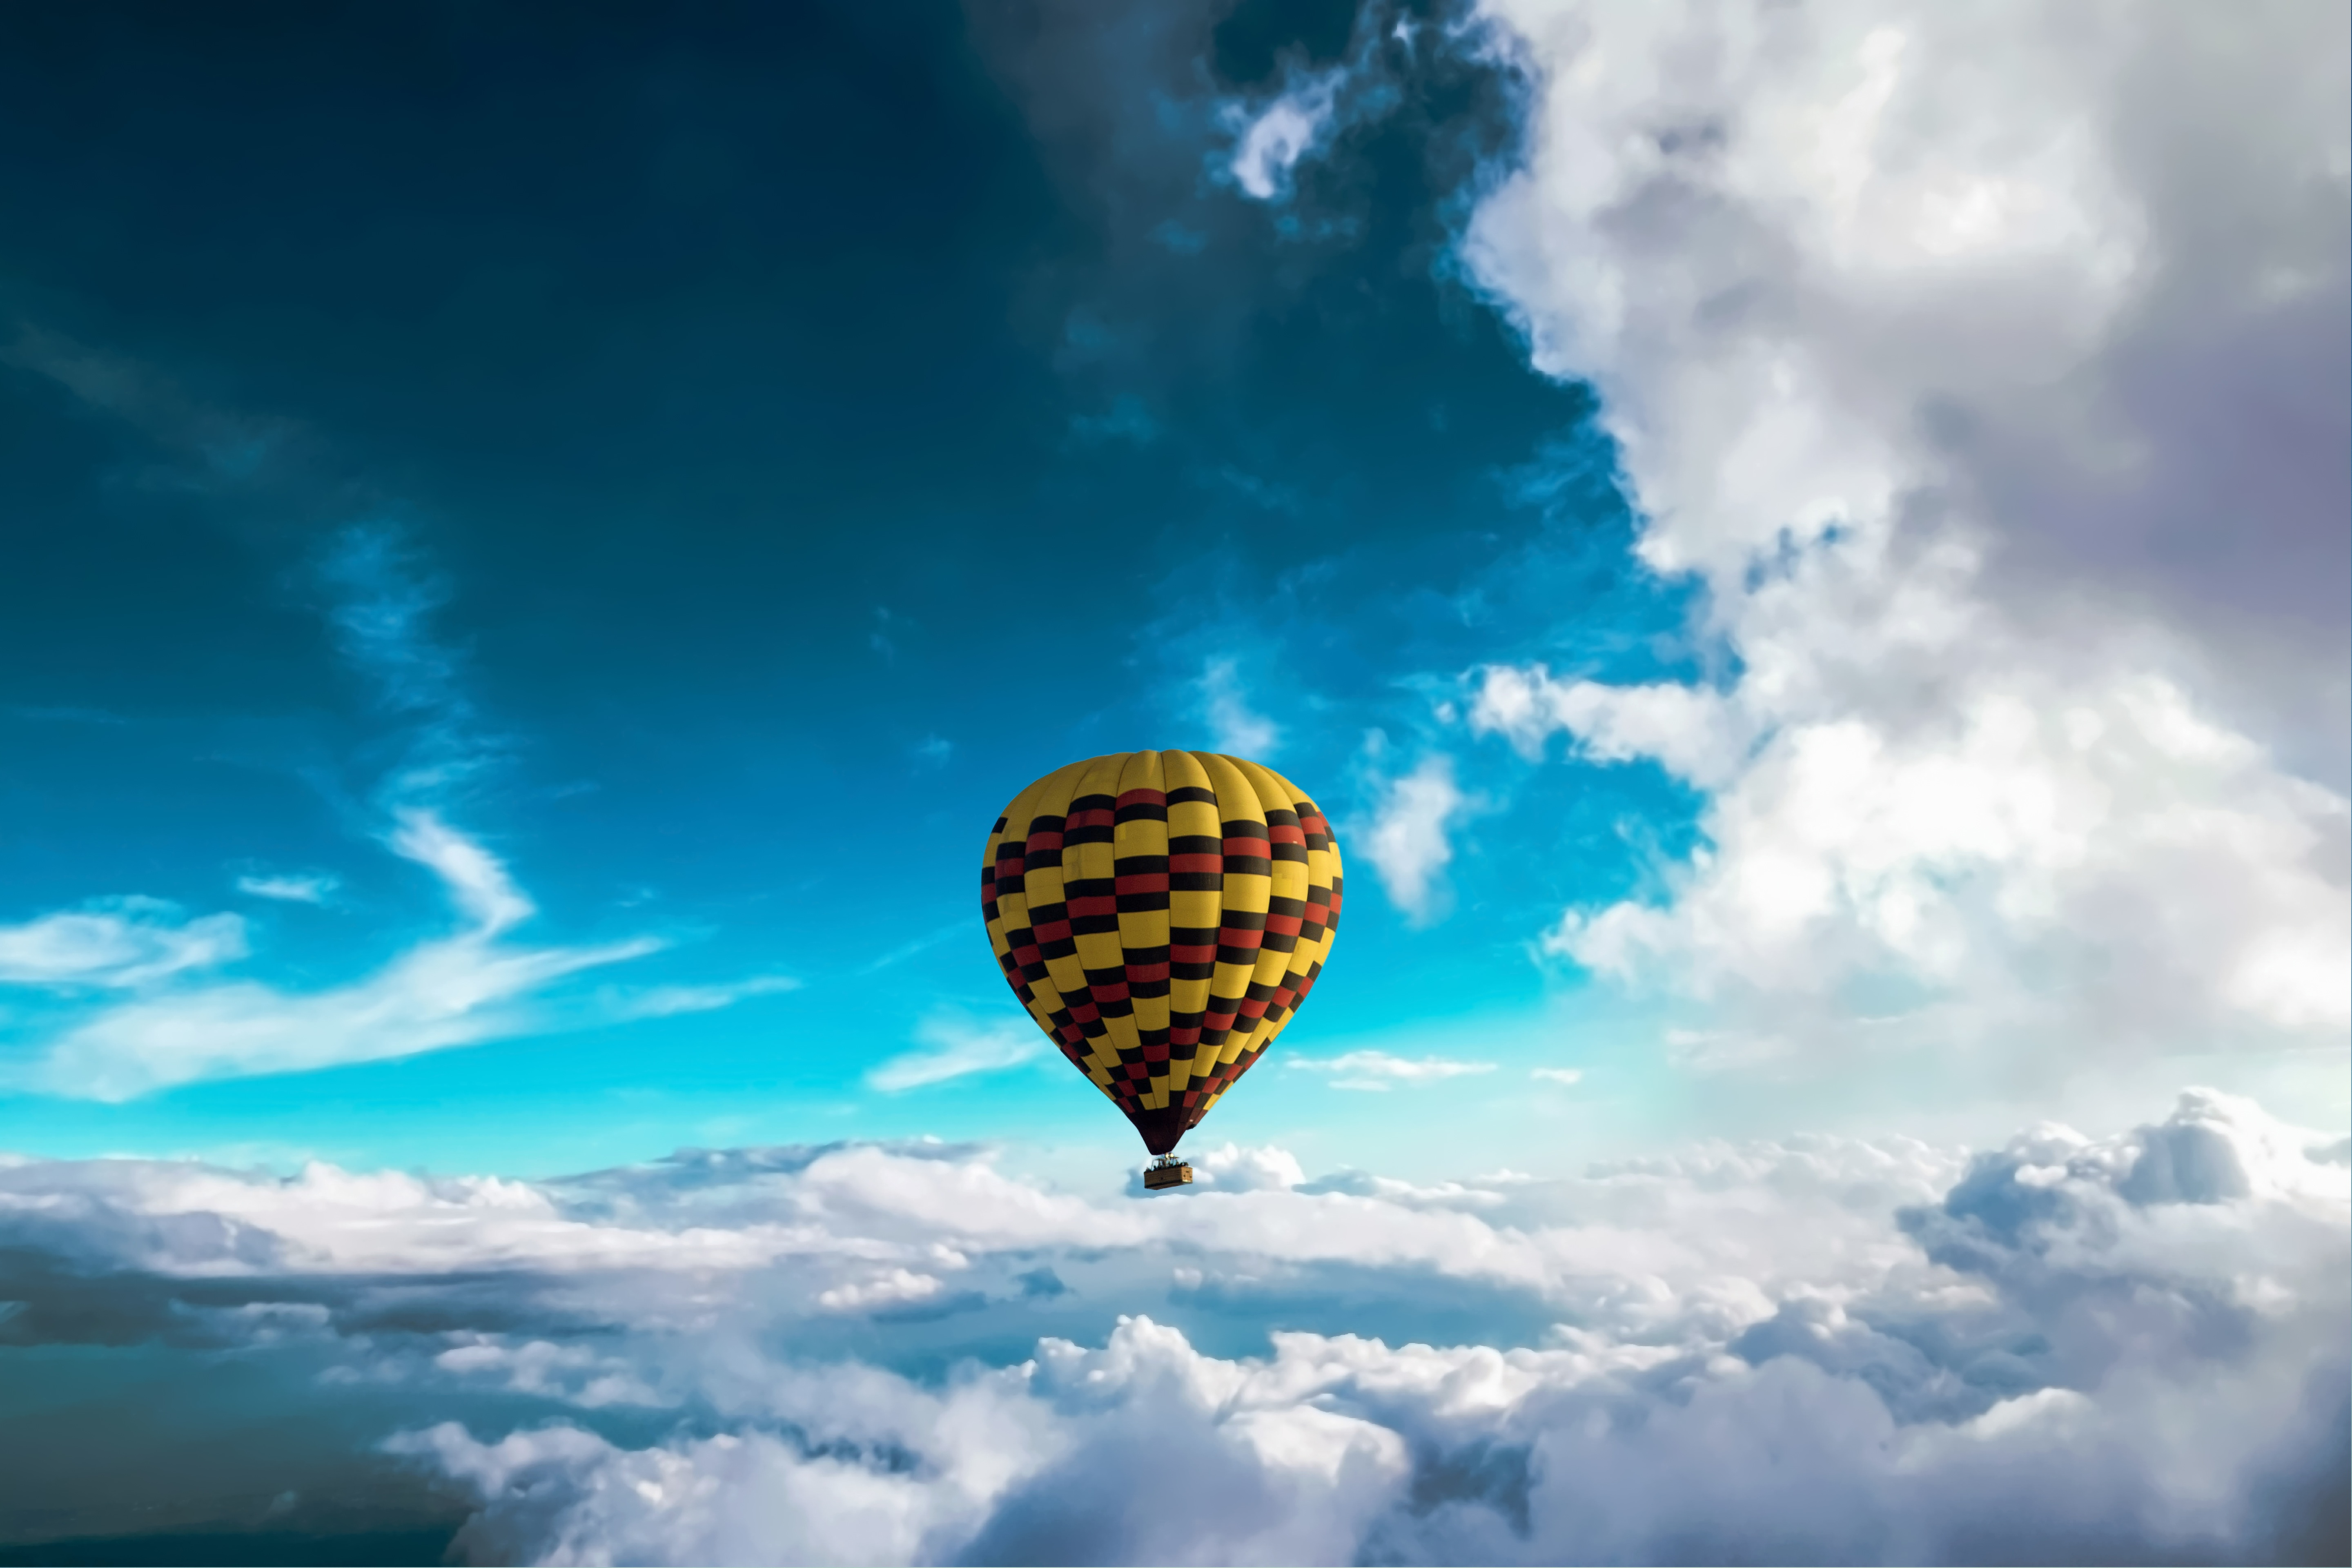 104534 download wallpaper Miscellanea, Miscellaneous, Balloon, Sky, Clouds, Flight, Height, Motley, Variegated screensavers and pictures for free